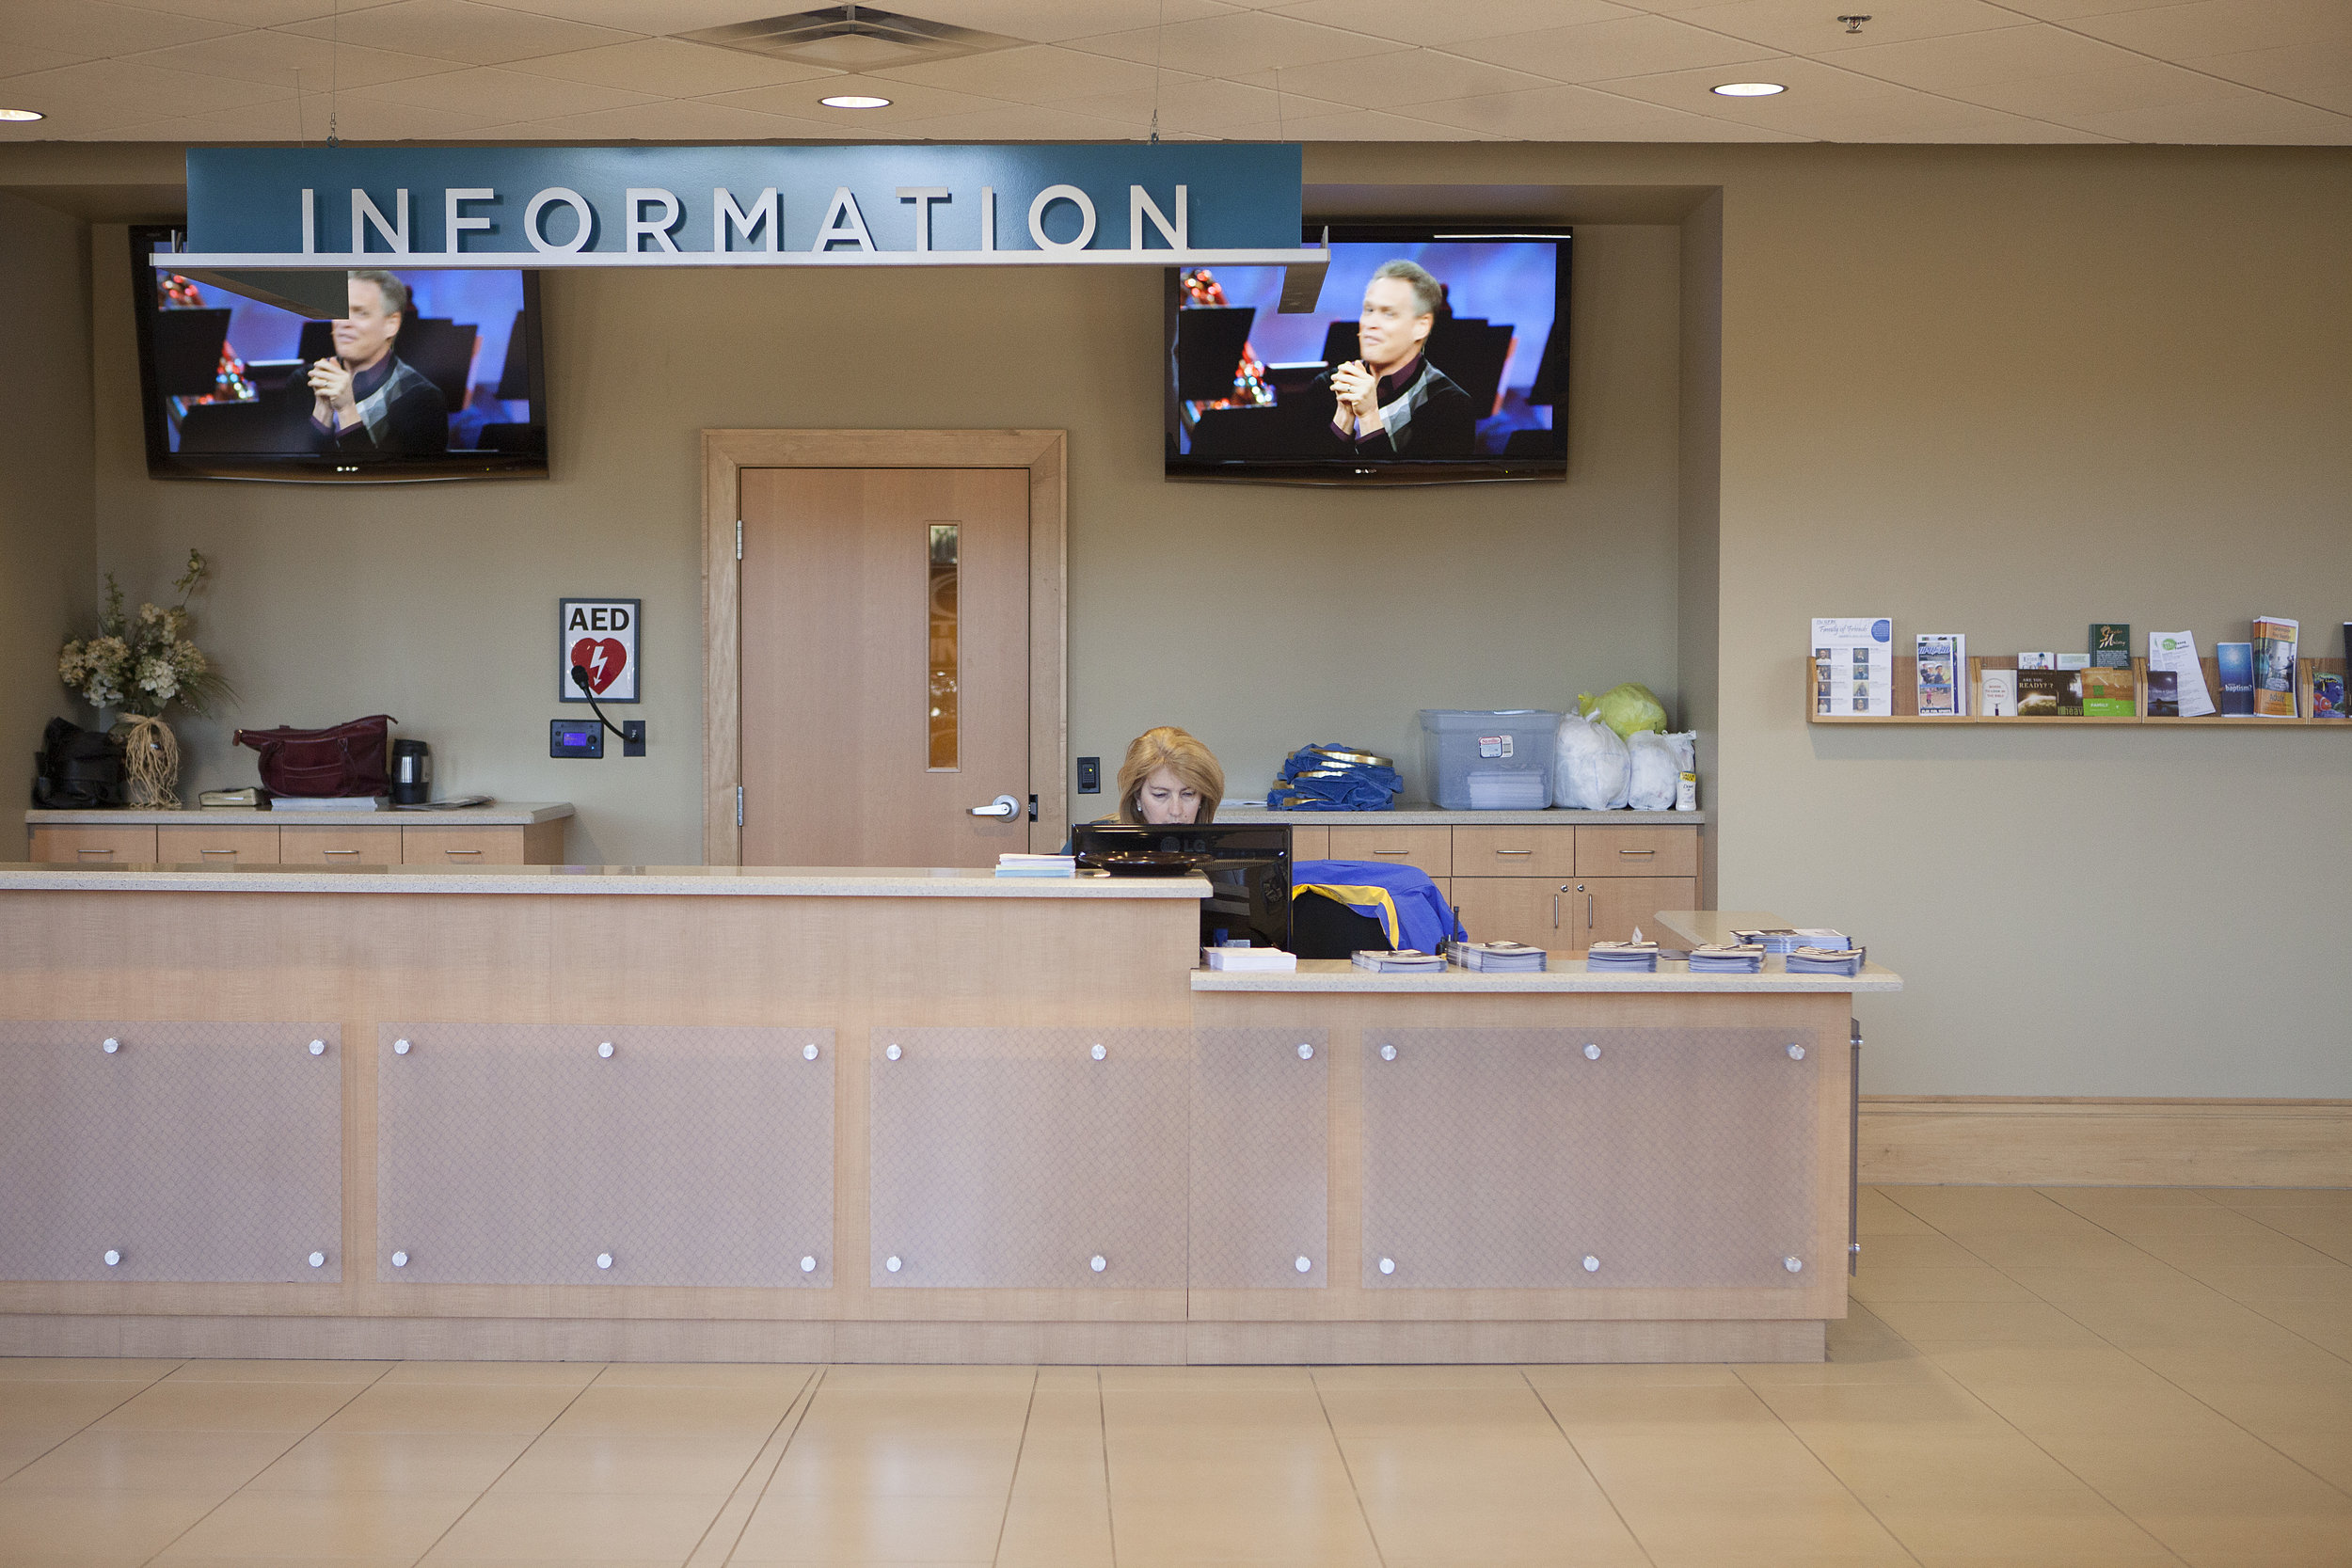 Information Desk - Stop by any of our Information Desks around campus to learn more about GFBC. Our knowledegable staff will be happy to assist you during your visit.